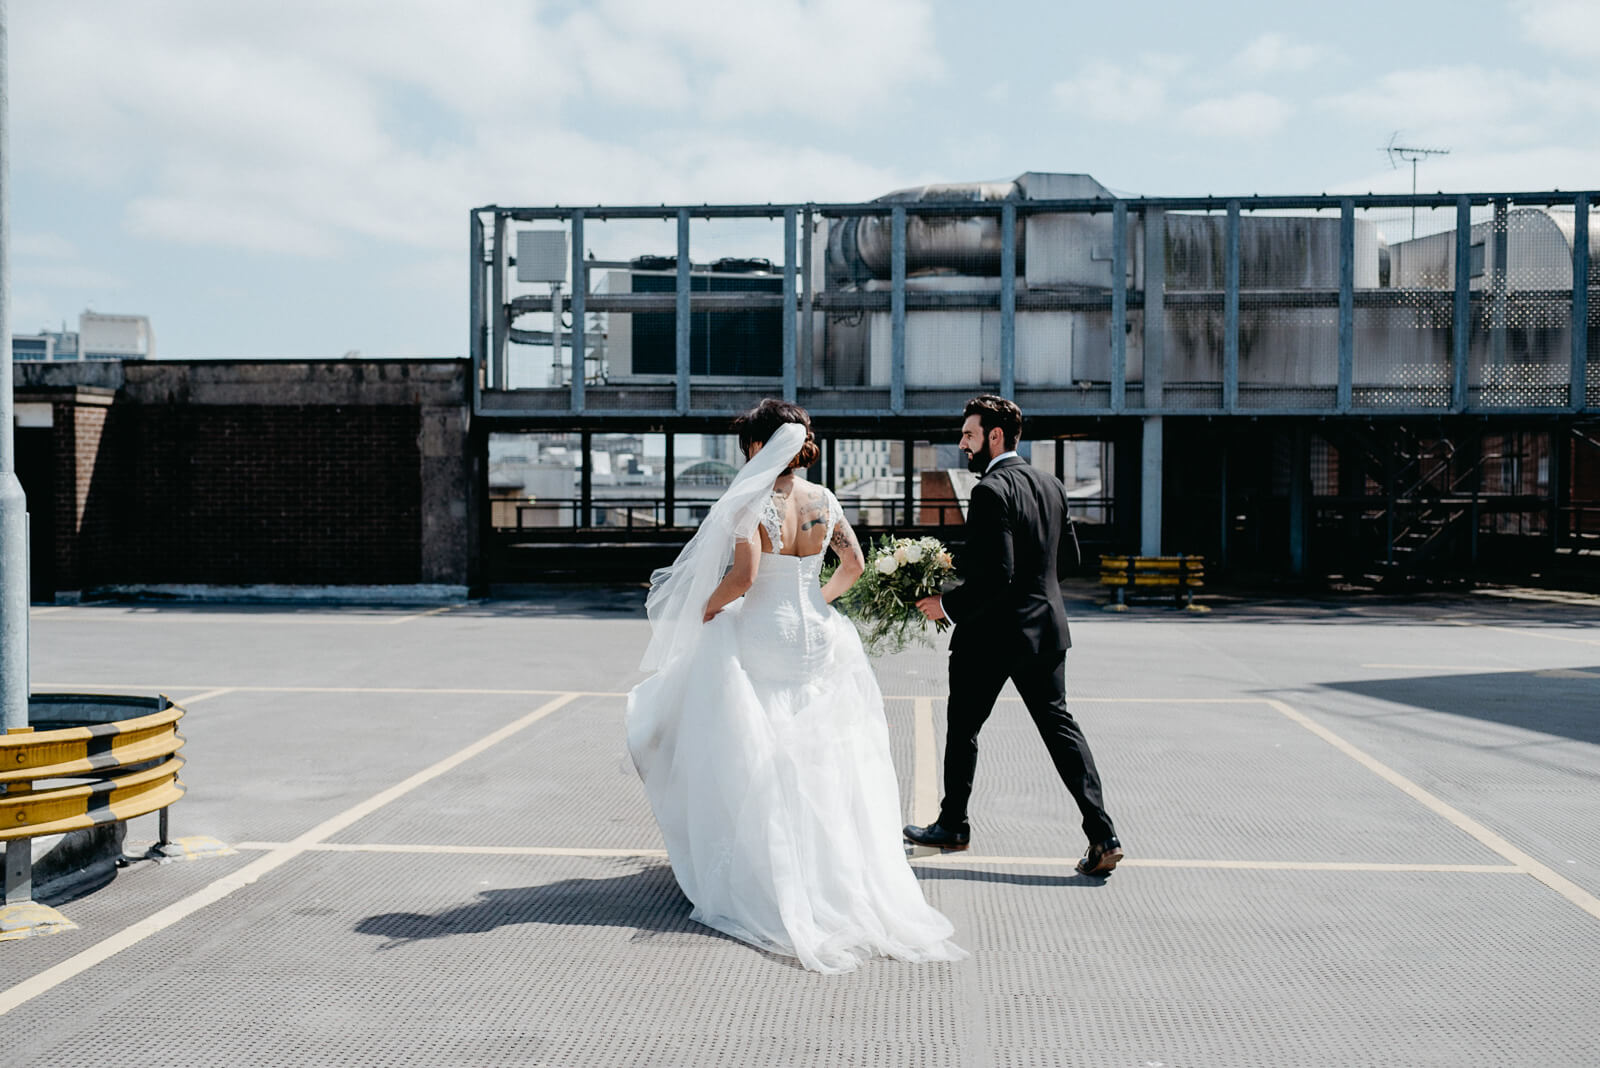 modern bride and groom on city rooftop taking in urban vibes of city